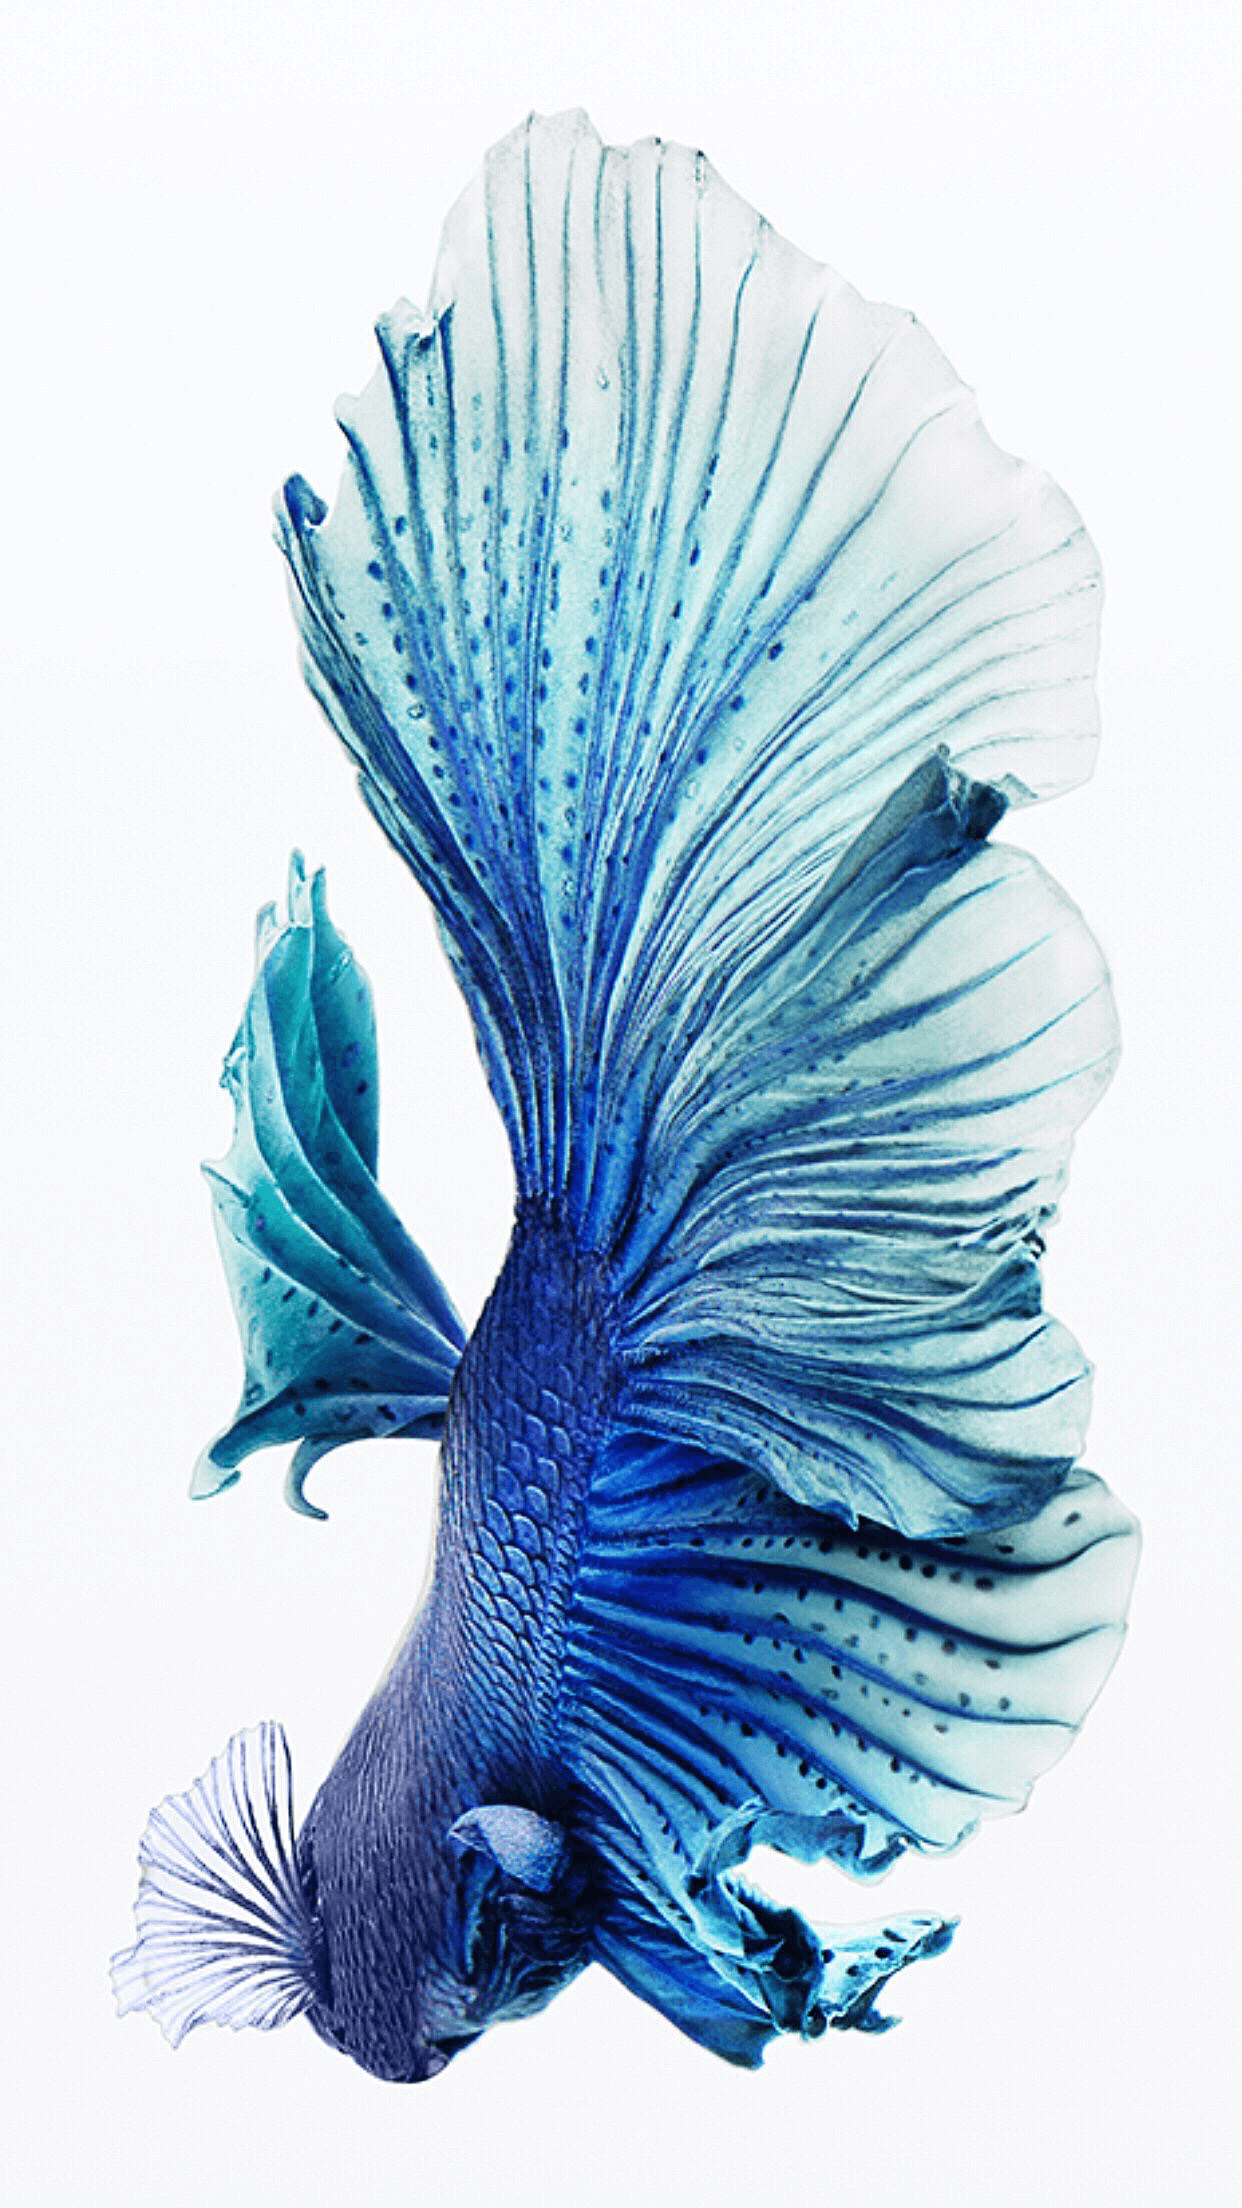 iPhone Fish Wallpapers descarga gratuita